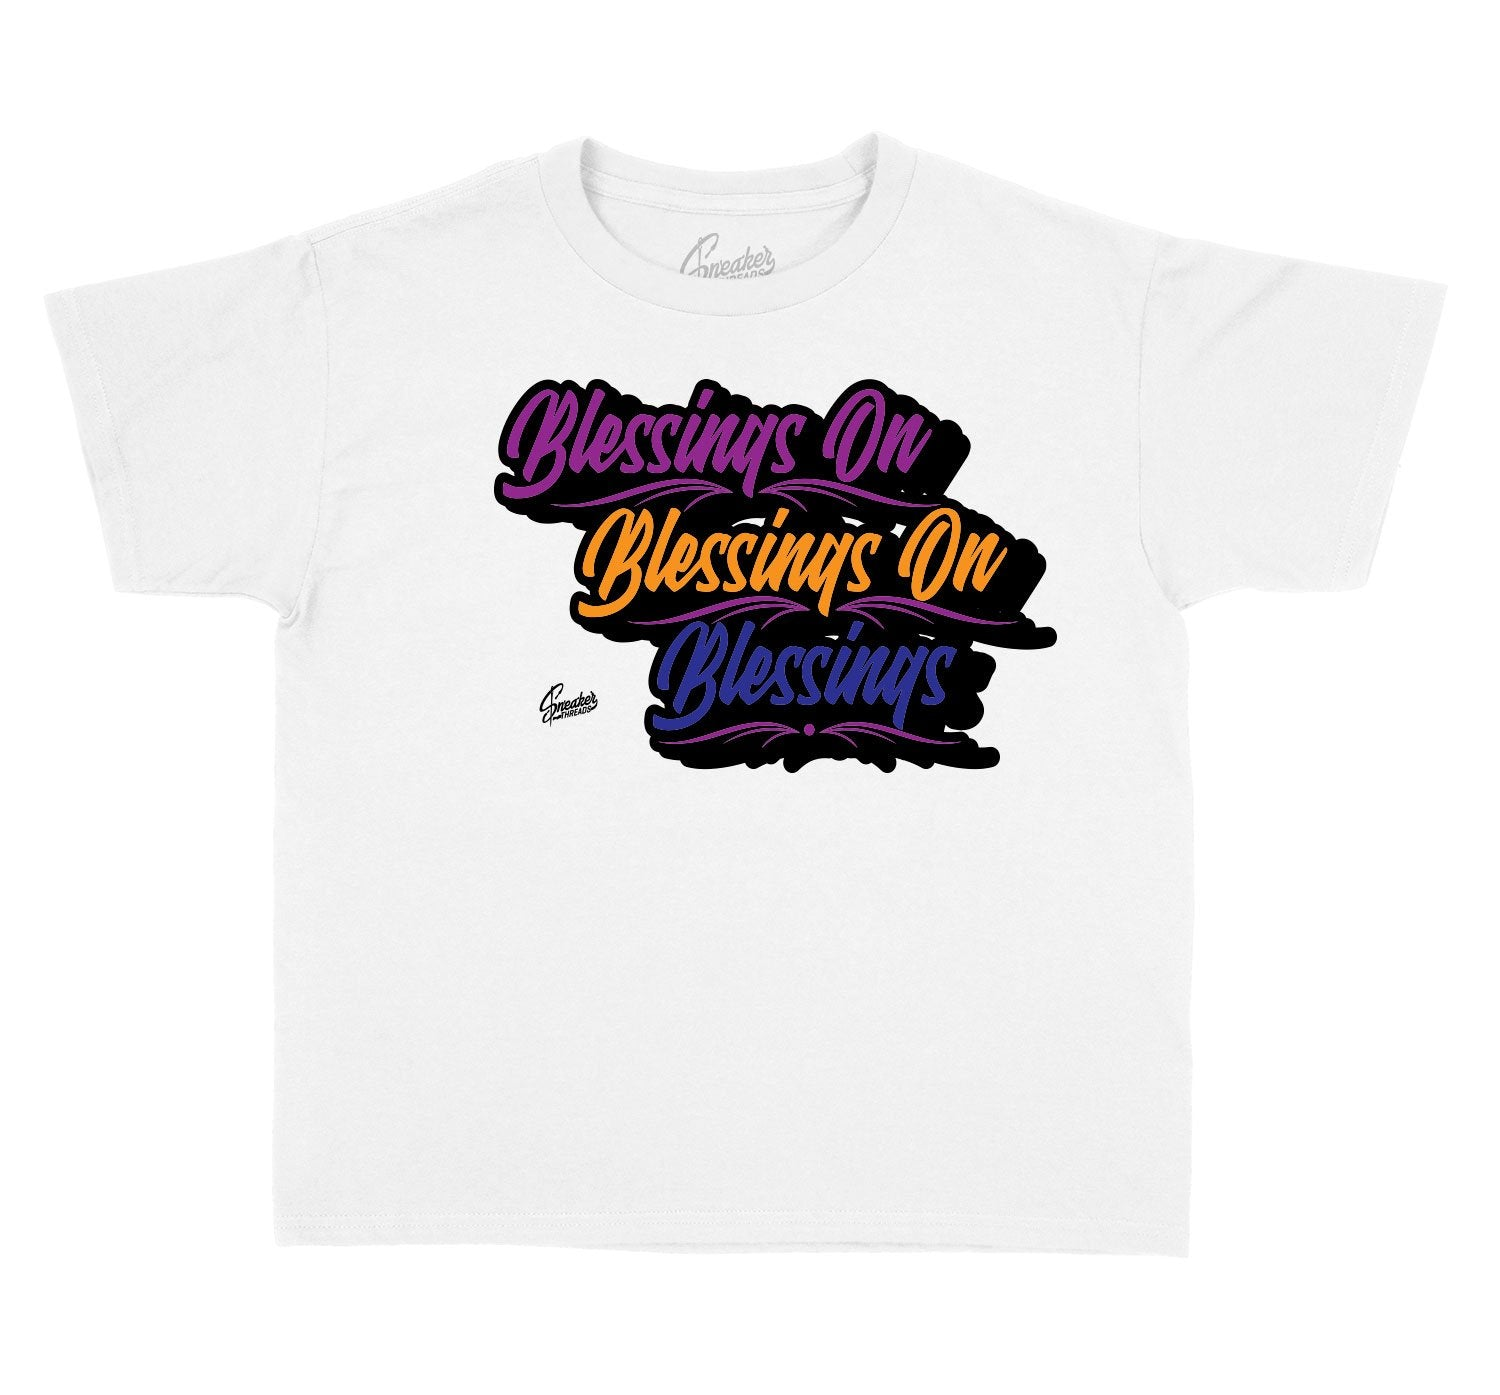 Kids tees designed to match the Jordan 4 rush violet sneakers